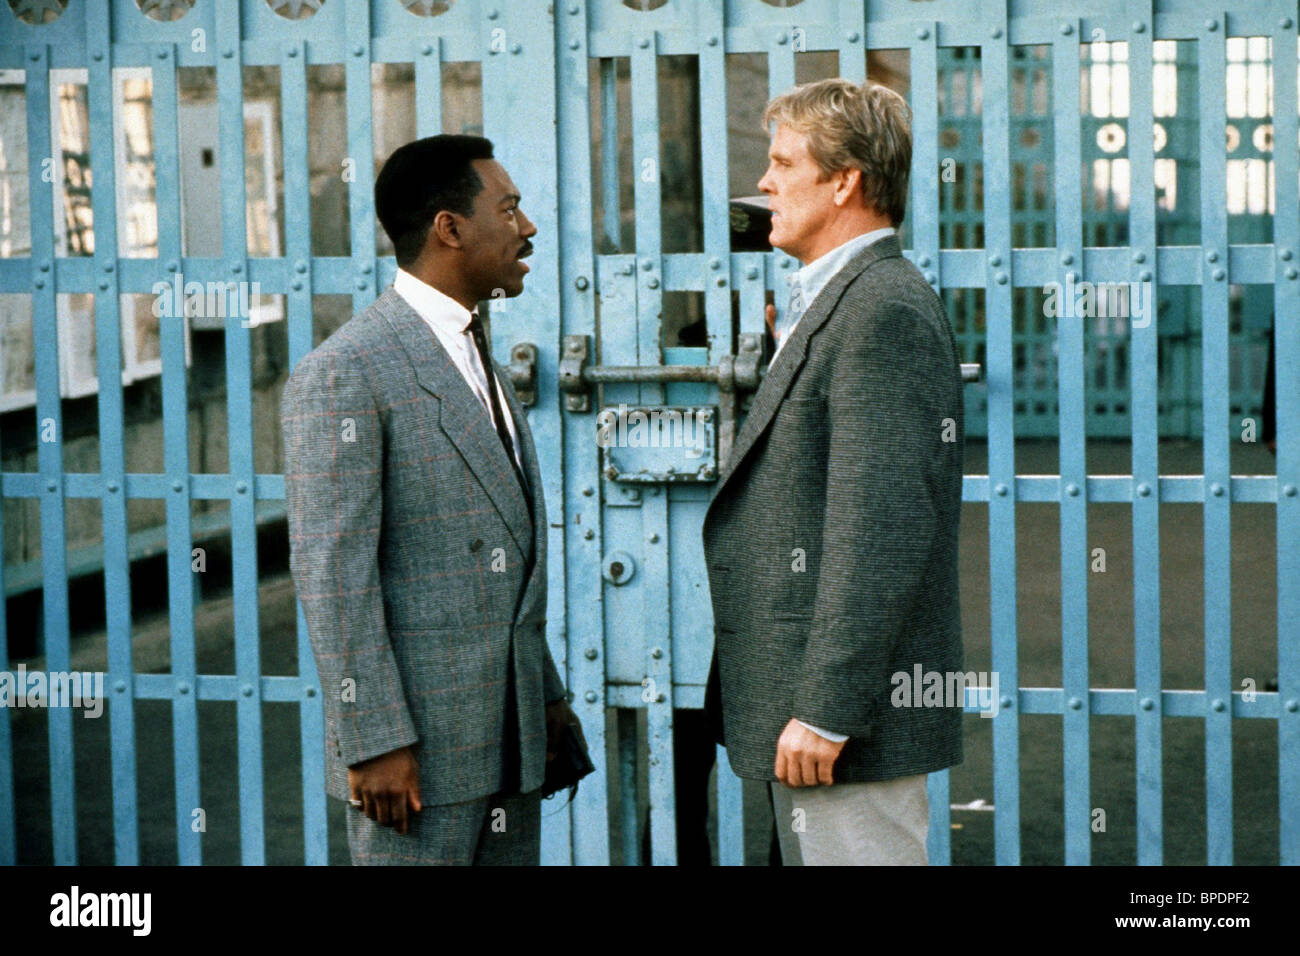 ¿Cuánto mide Eddie Murphy? - Altura - Real height Eddie-murphy-nick-nolte-another-48-hrs-another-48-hours-1990-BPDPF2